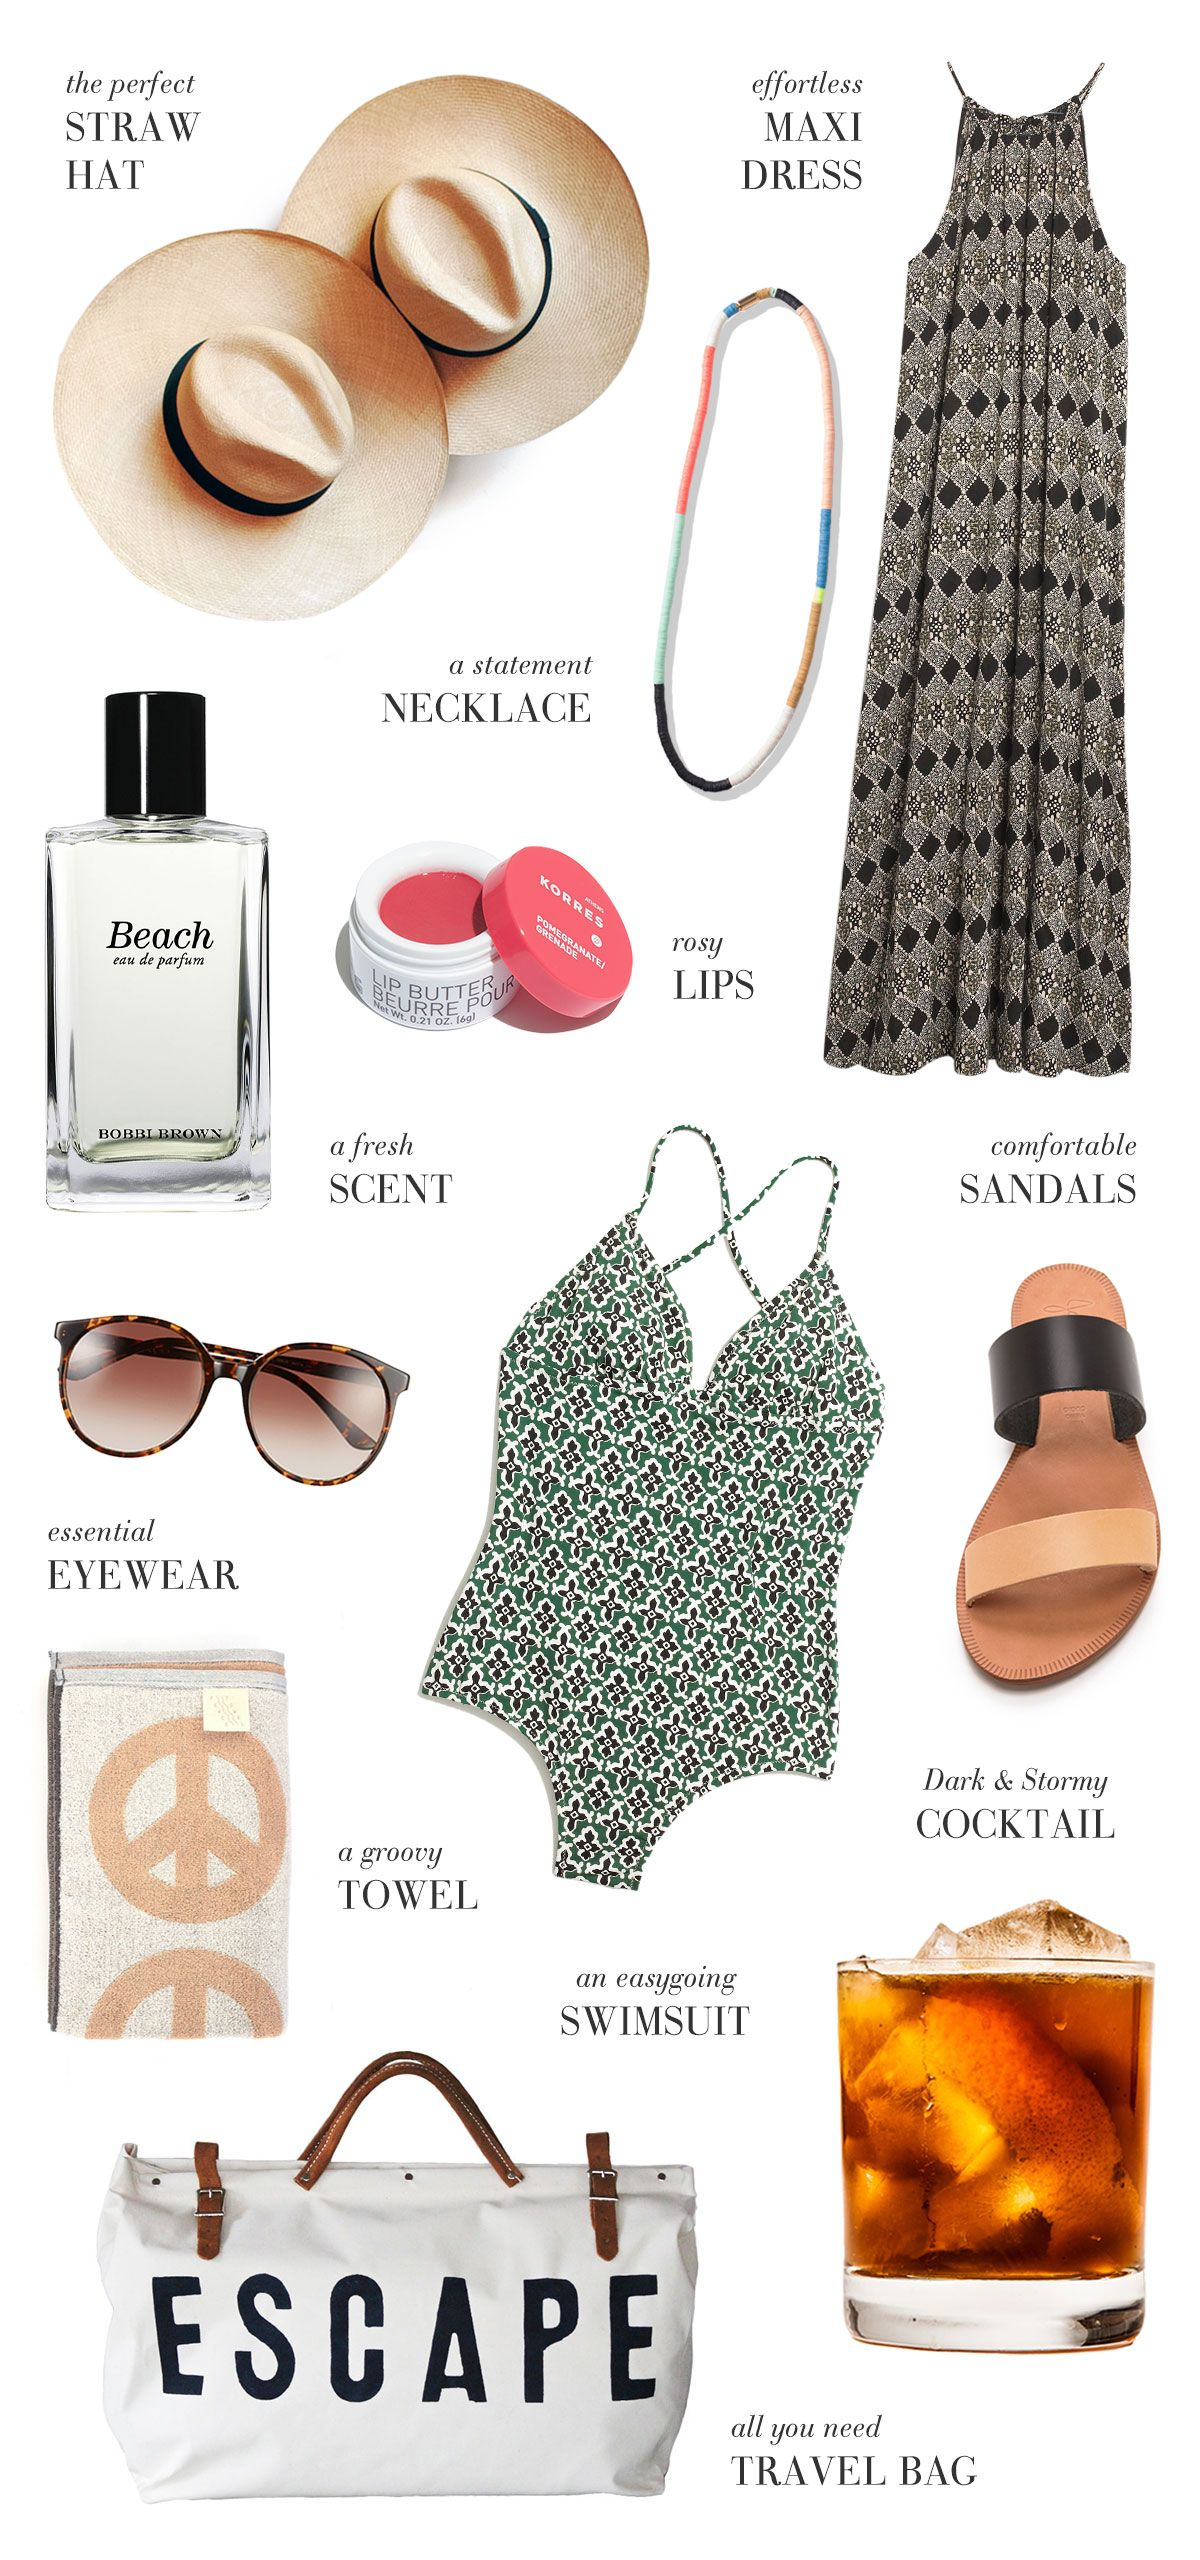 What to Wear on Vacation: A packing list with essentials, like comfy sandals and a big straw hat.